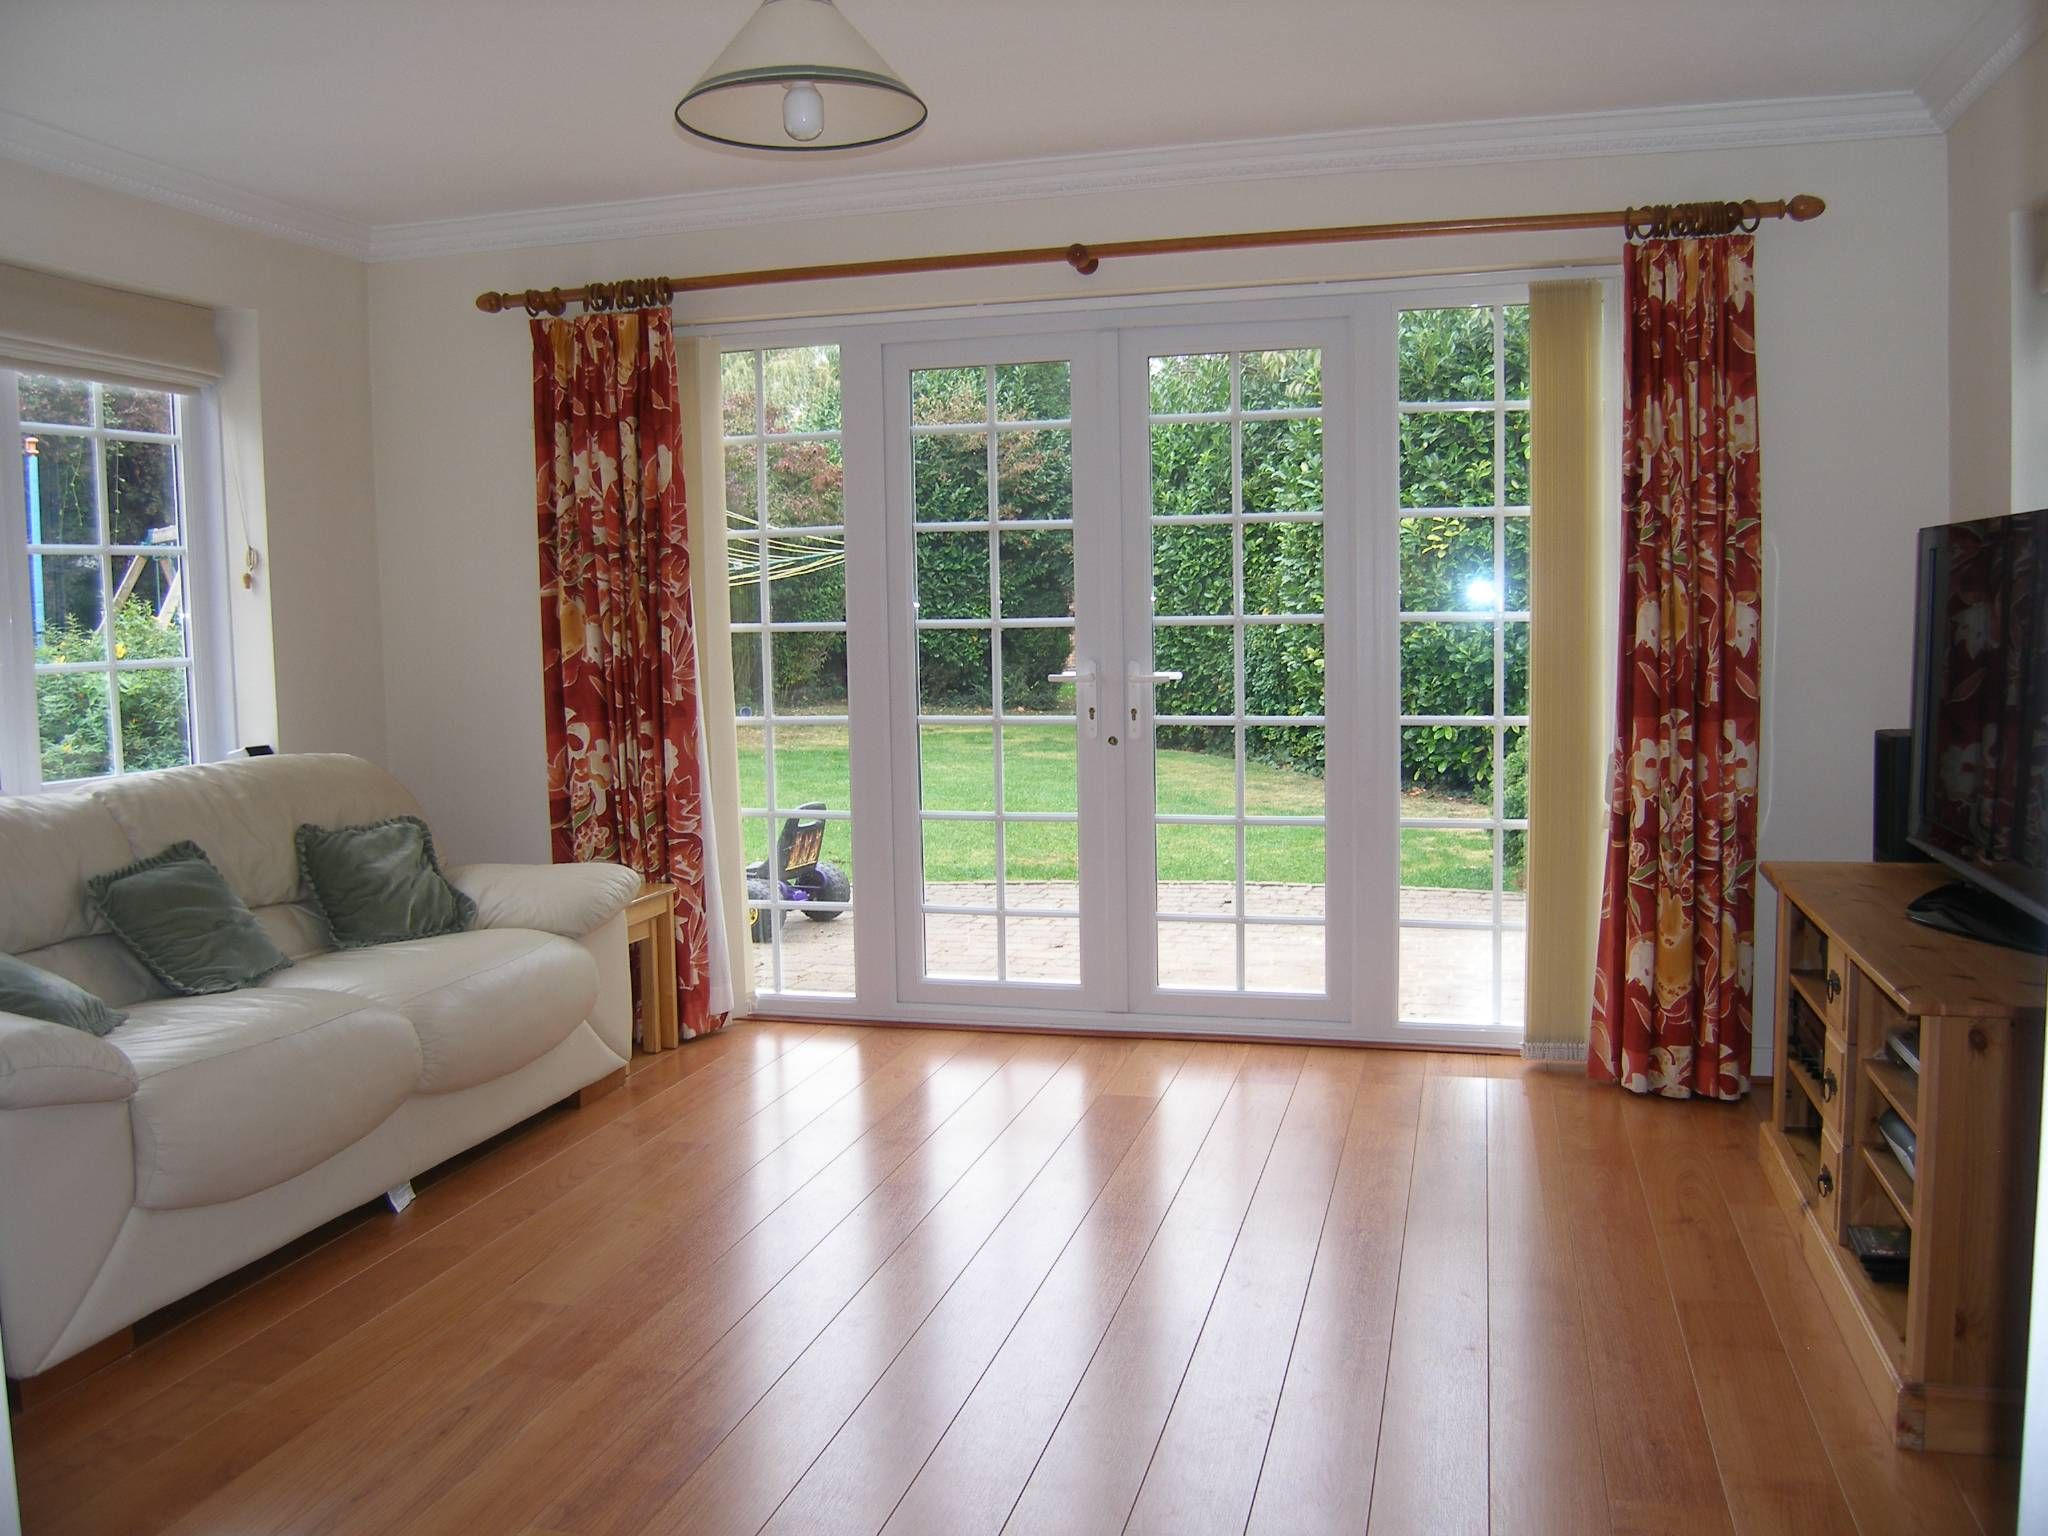 The Prehung French Door Can Matched Really Wellwith The